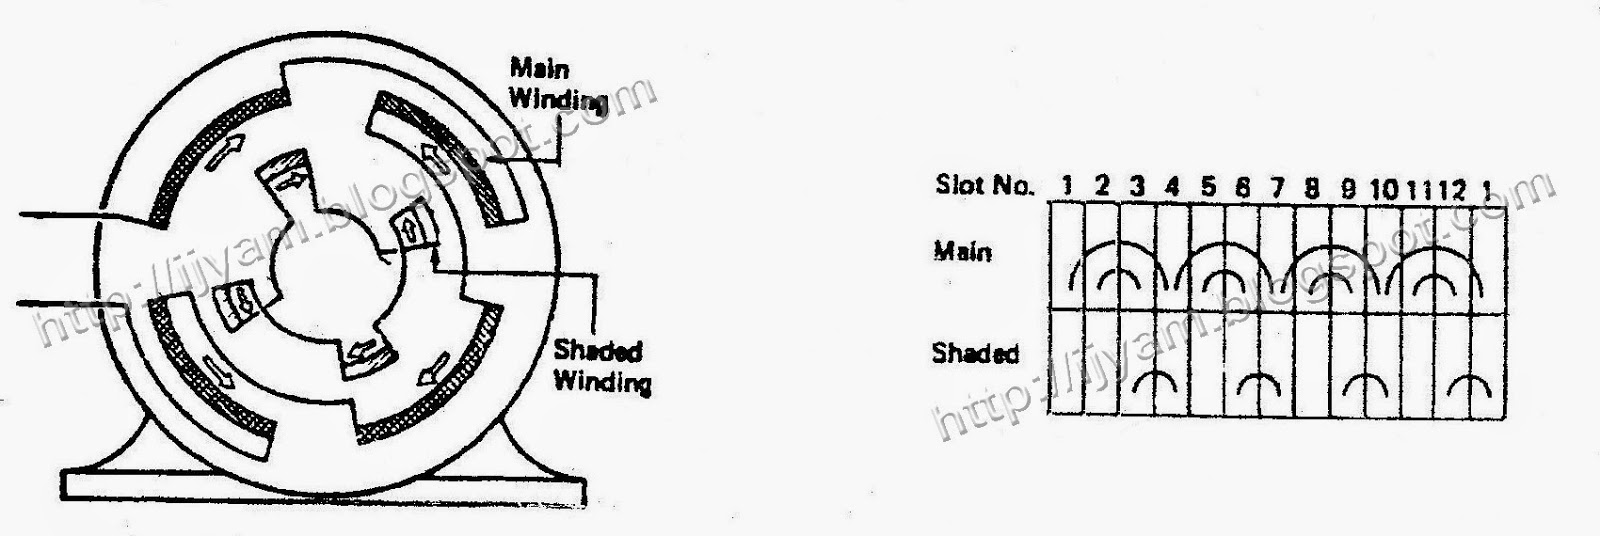 Dorable three phase winding diagram pictures electrical and wiring save wiring diagram 12 lead motor gidn co attractive three phase winding diagram elaboration electrical asfbconference2016 Choice Image